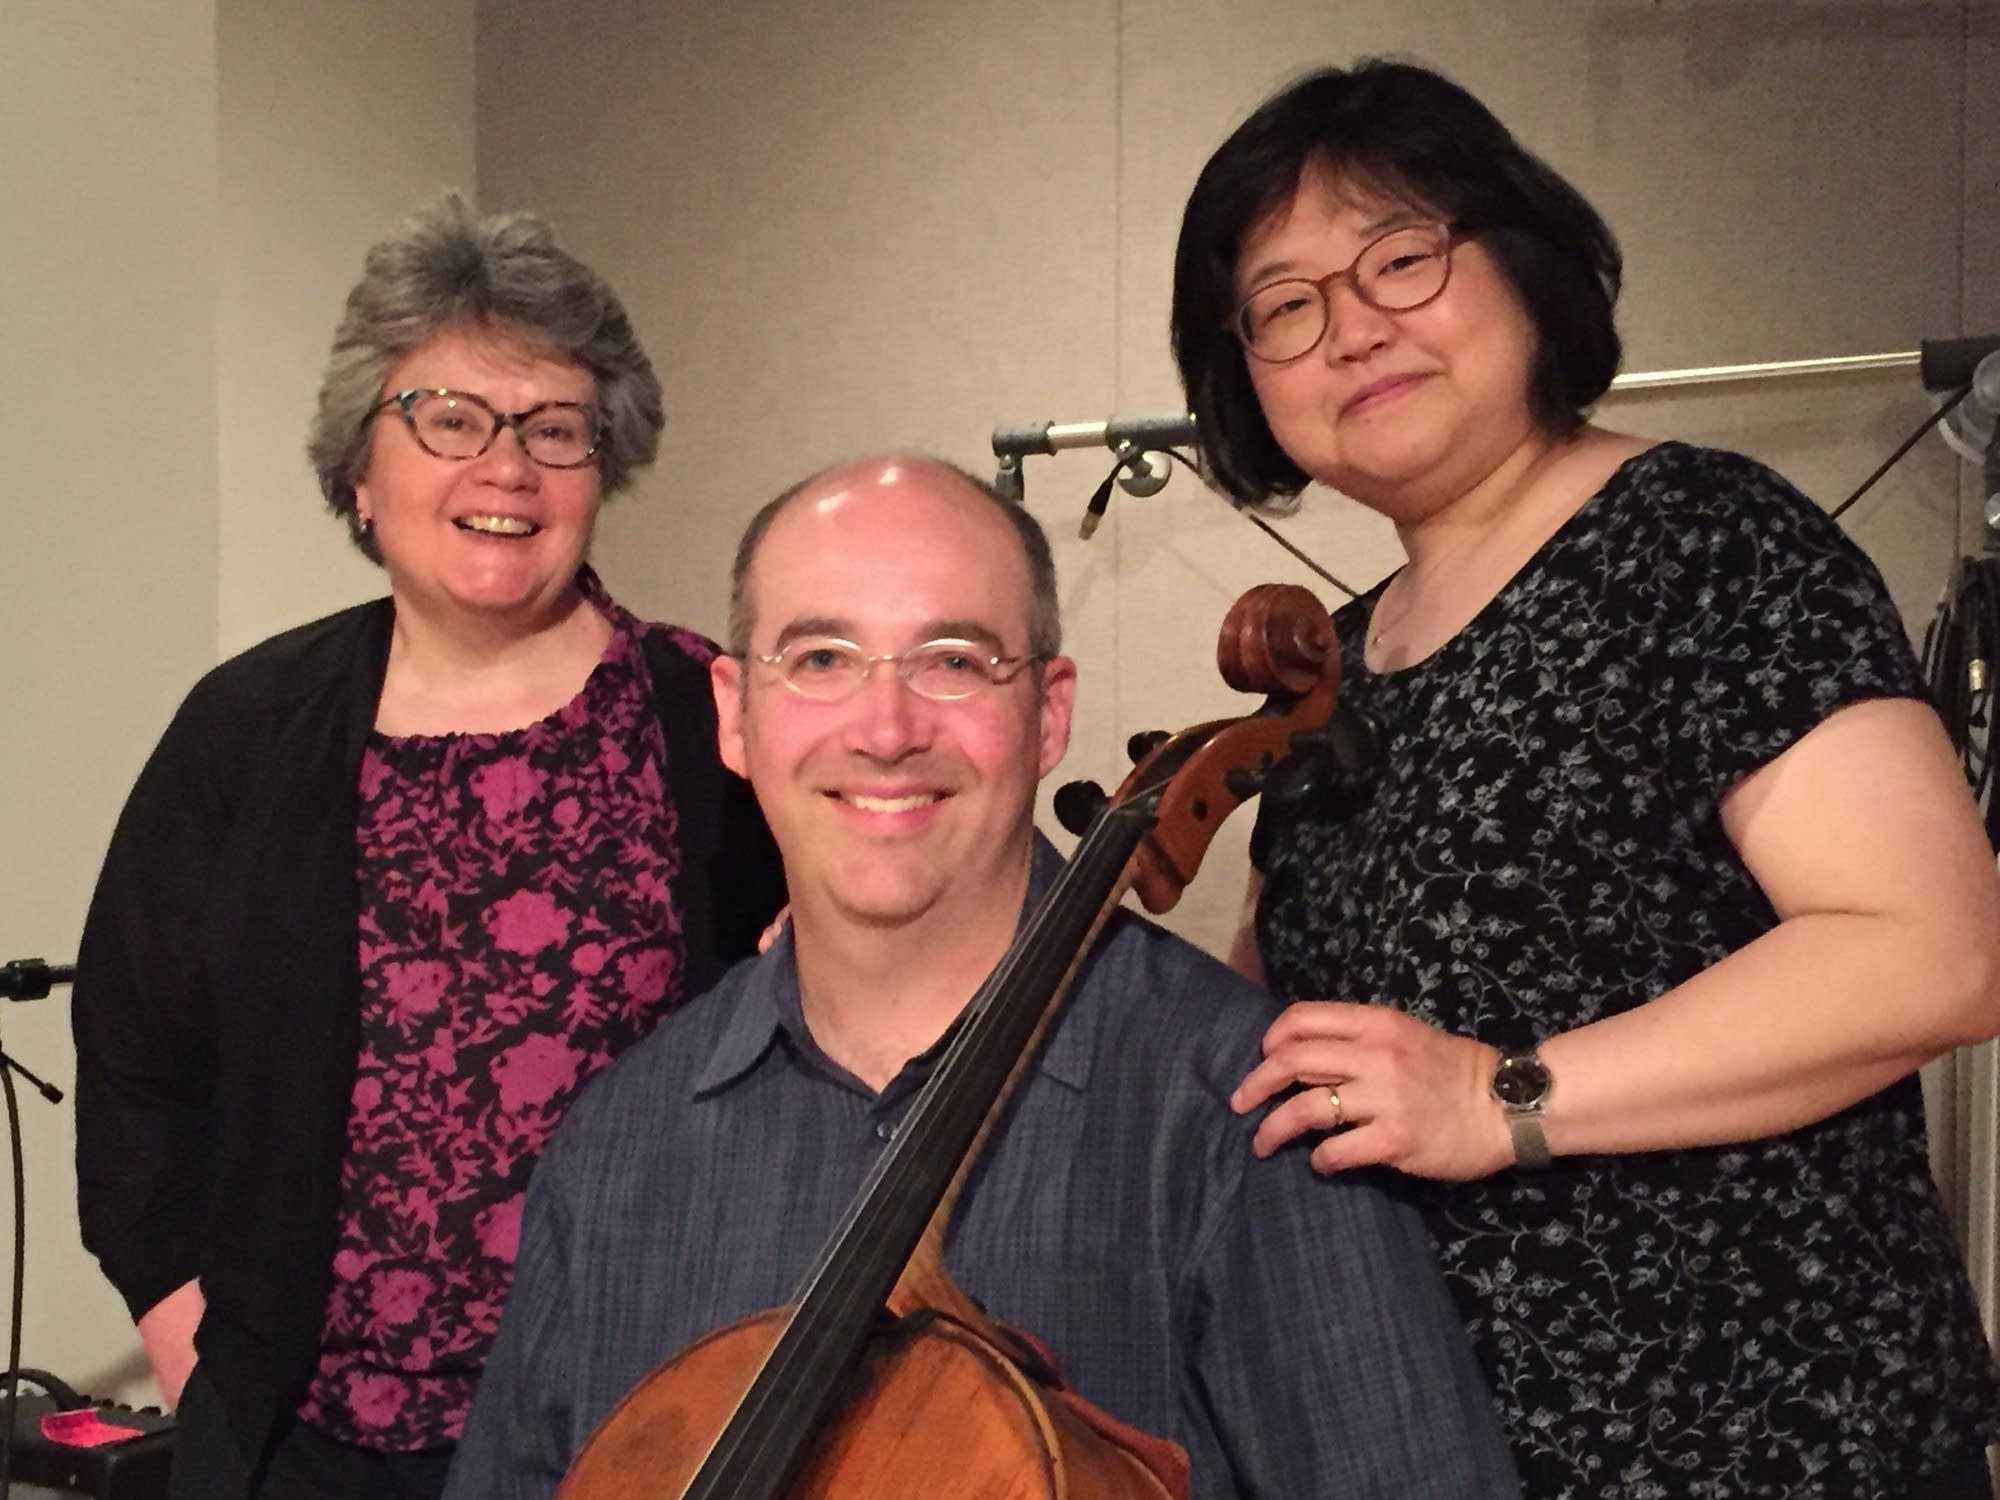 Anna Clift, Mark Kosower and Jee-Won Oh